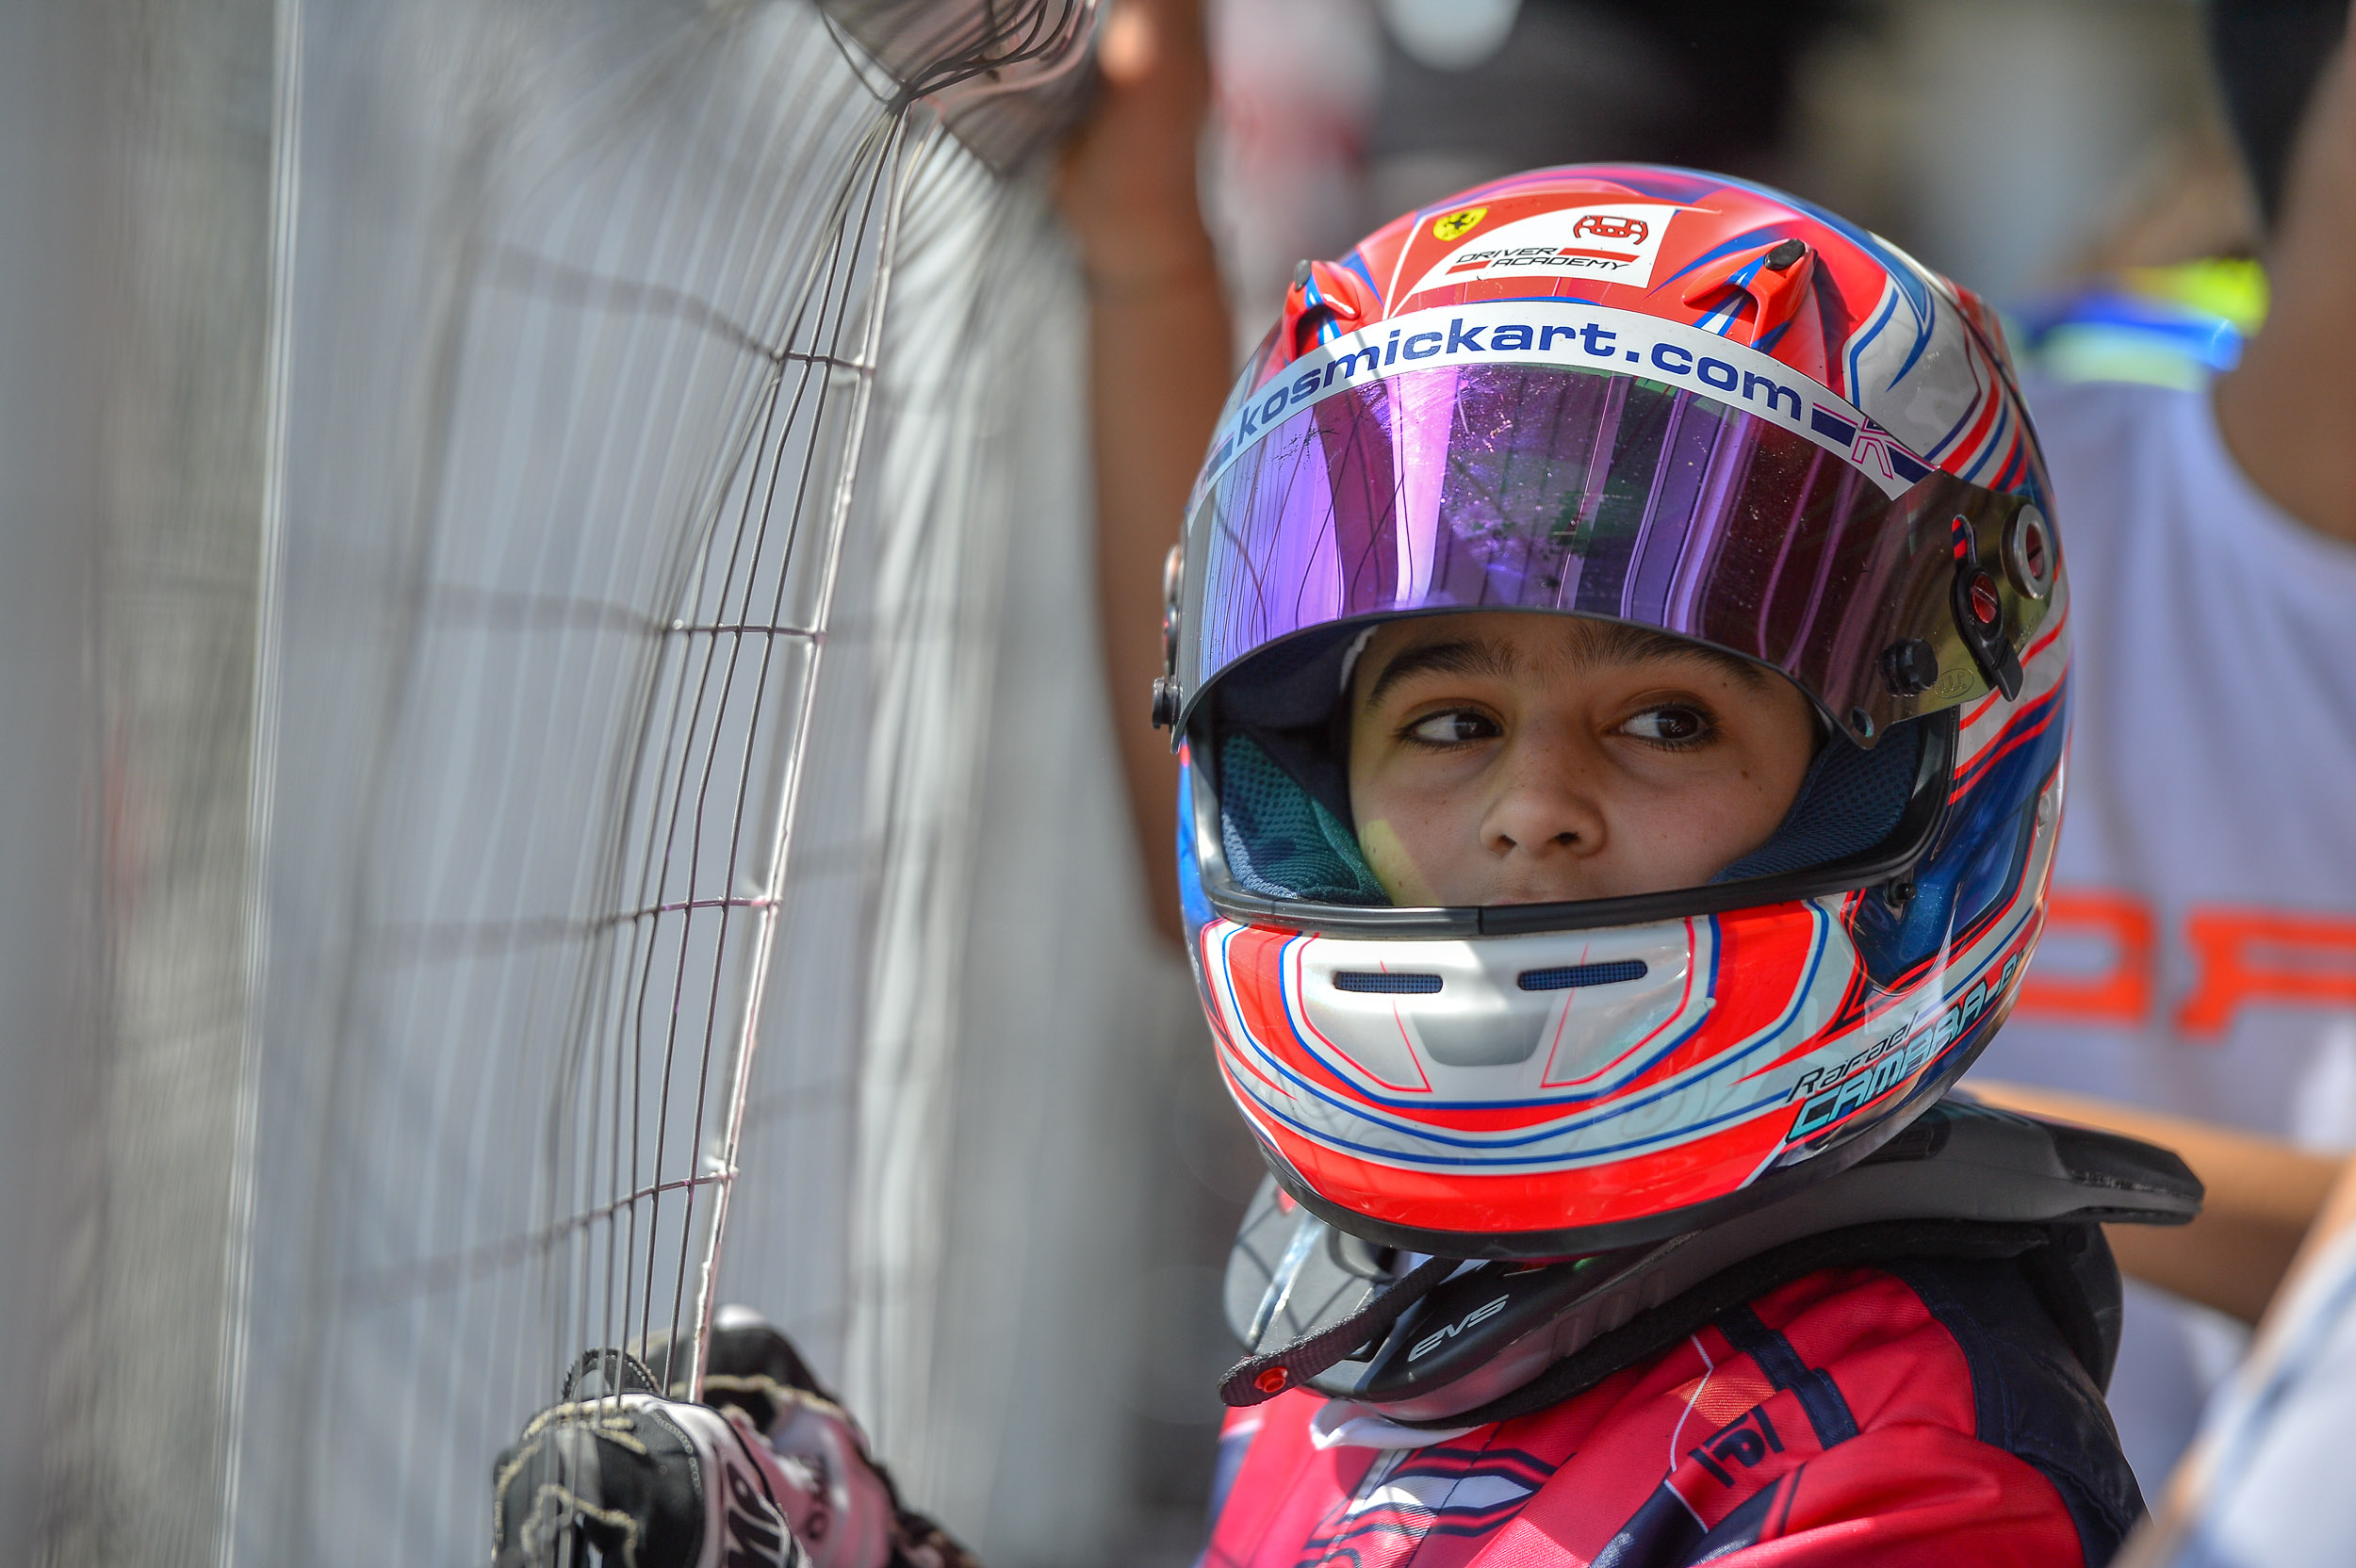 Photo of Kart – Rafael Câmara parte para a quarta e última etapa do WSK Super Master Series em Sarno